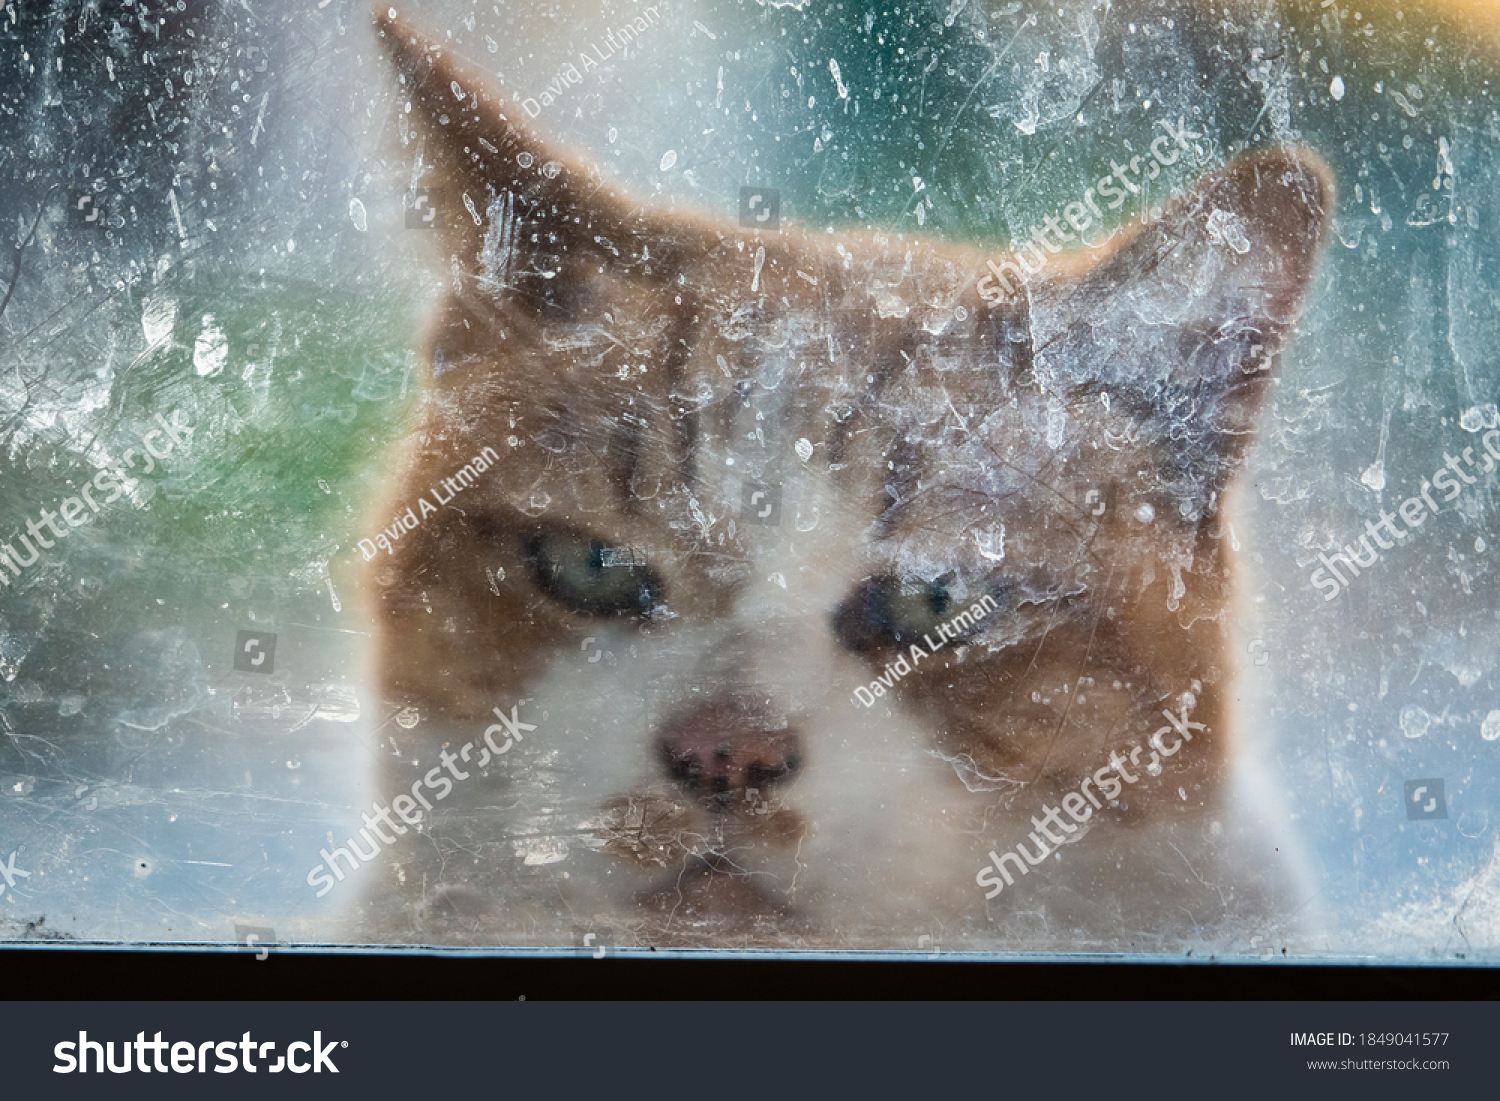 An orange cat looks through a foggy, scratched, dirty window, hoping to gain entry during the Covid19 pandemic crisis.